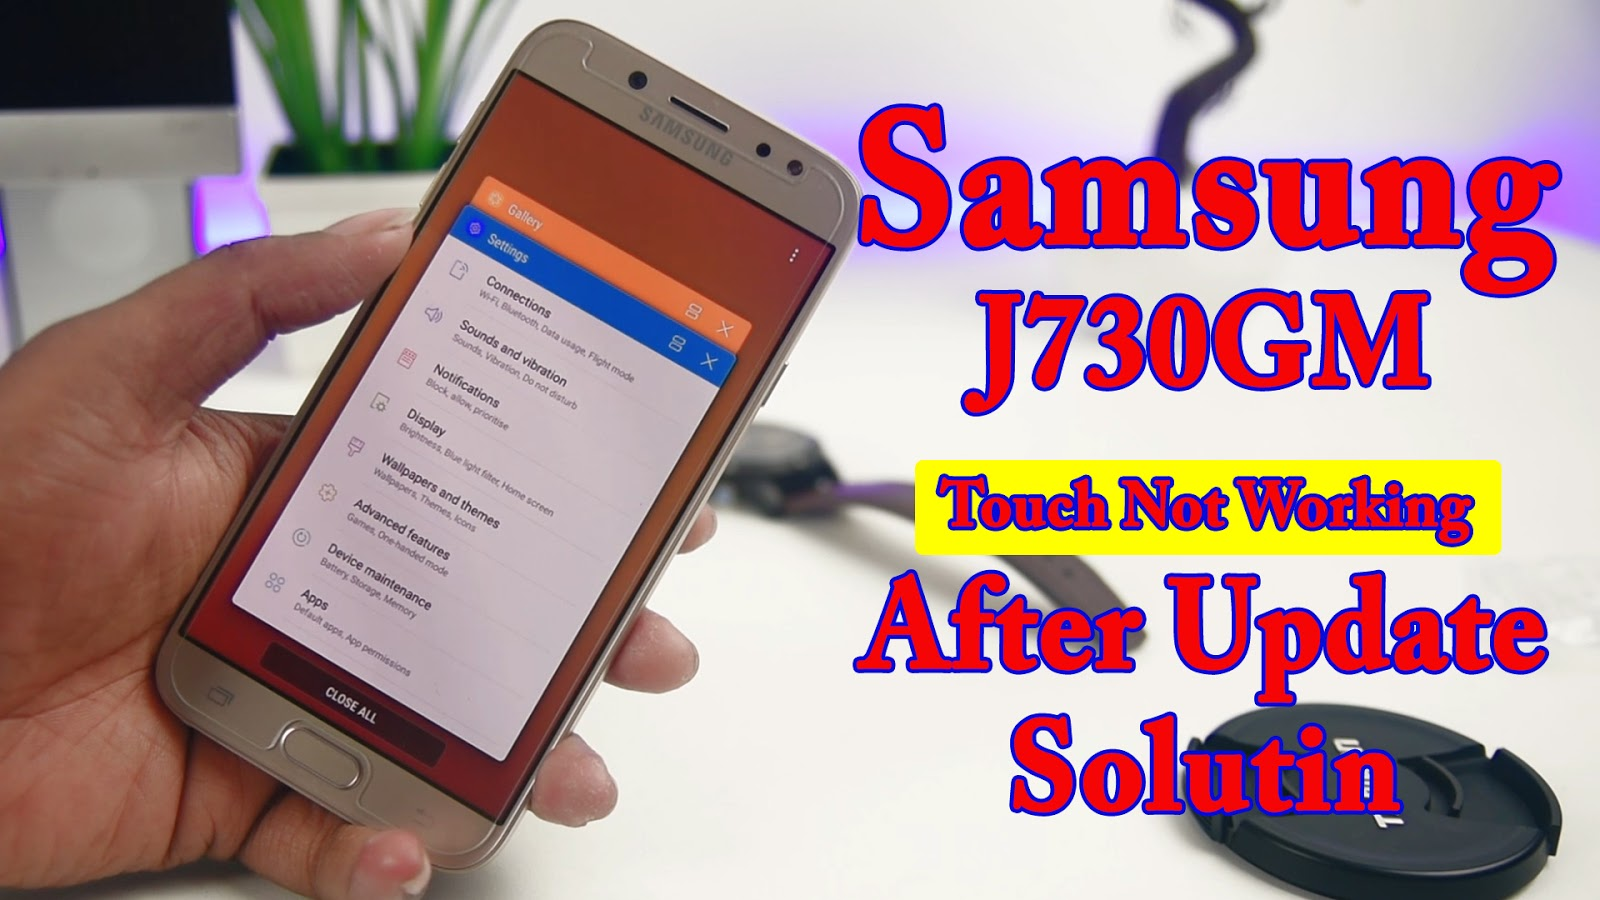 aungko: How To FIX Samsung Galaxy J7 Pro J730GM Touch Not